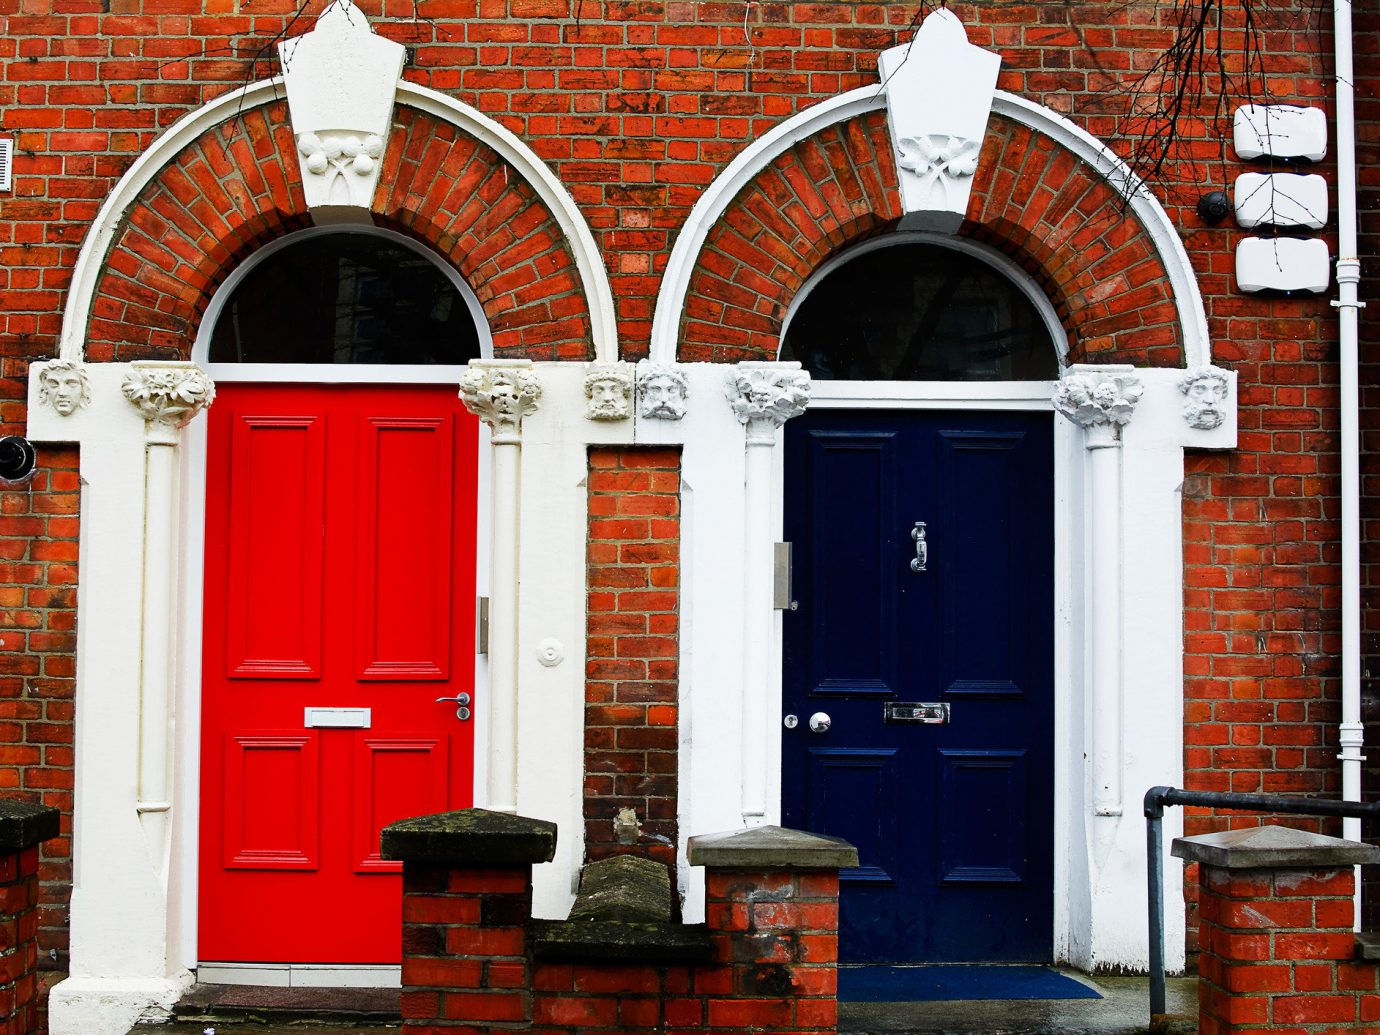 Offbeat building brick outdoor color red door sidewalk arch parked Architecture facade window stone interior design step chapel doorway curb